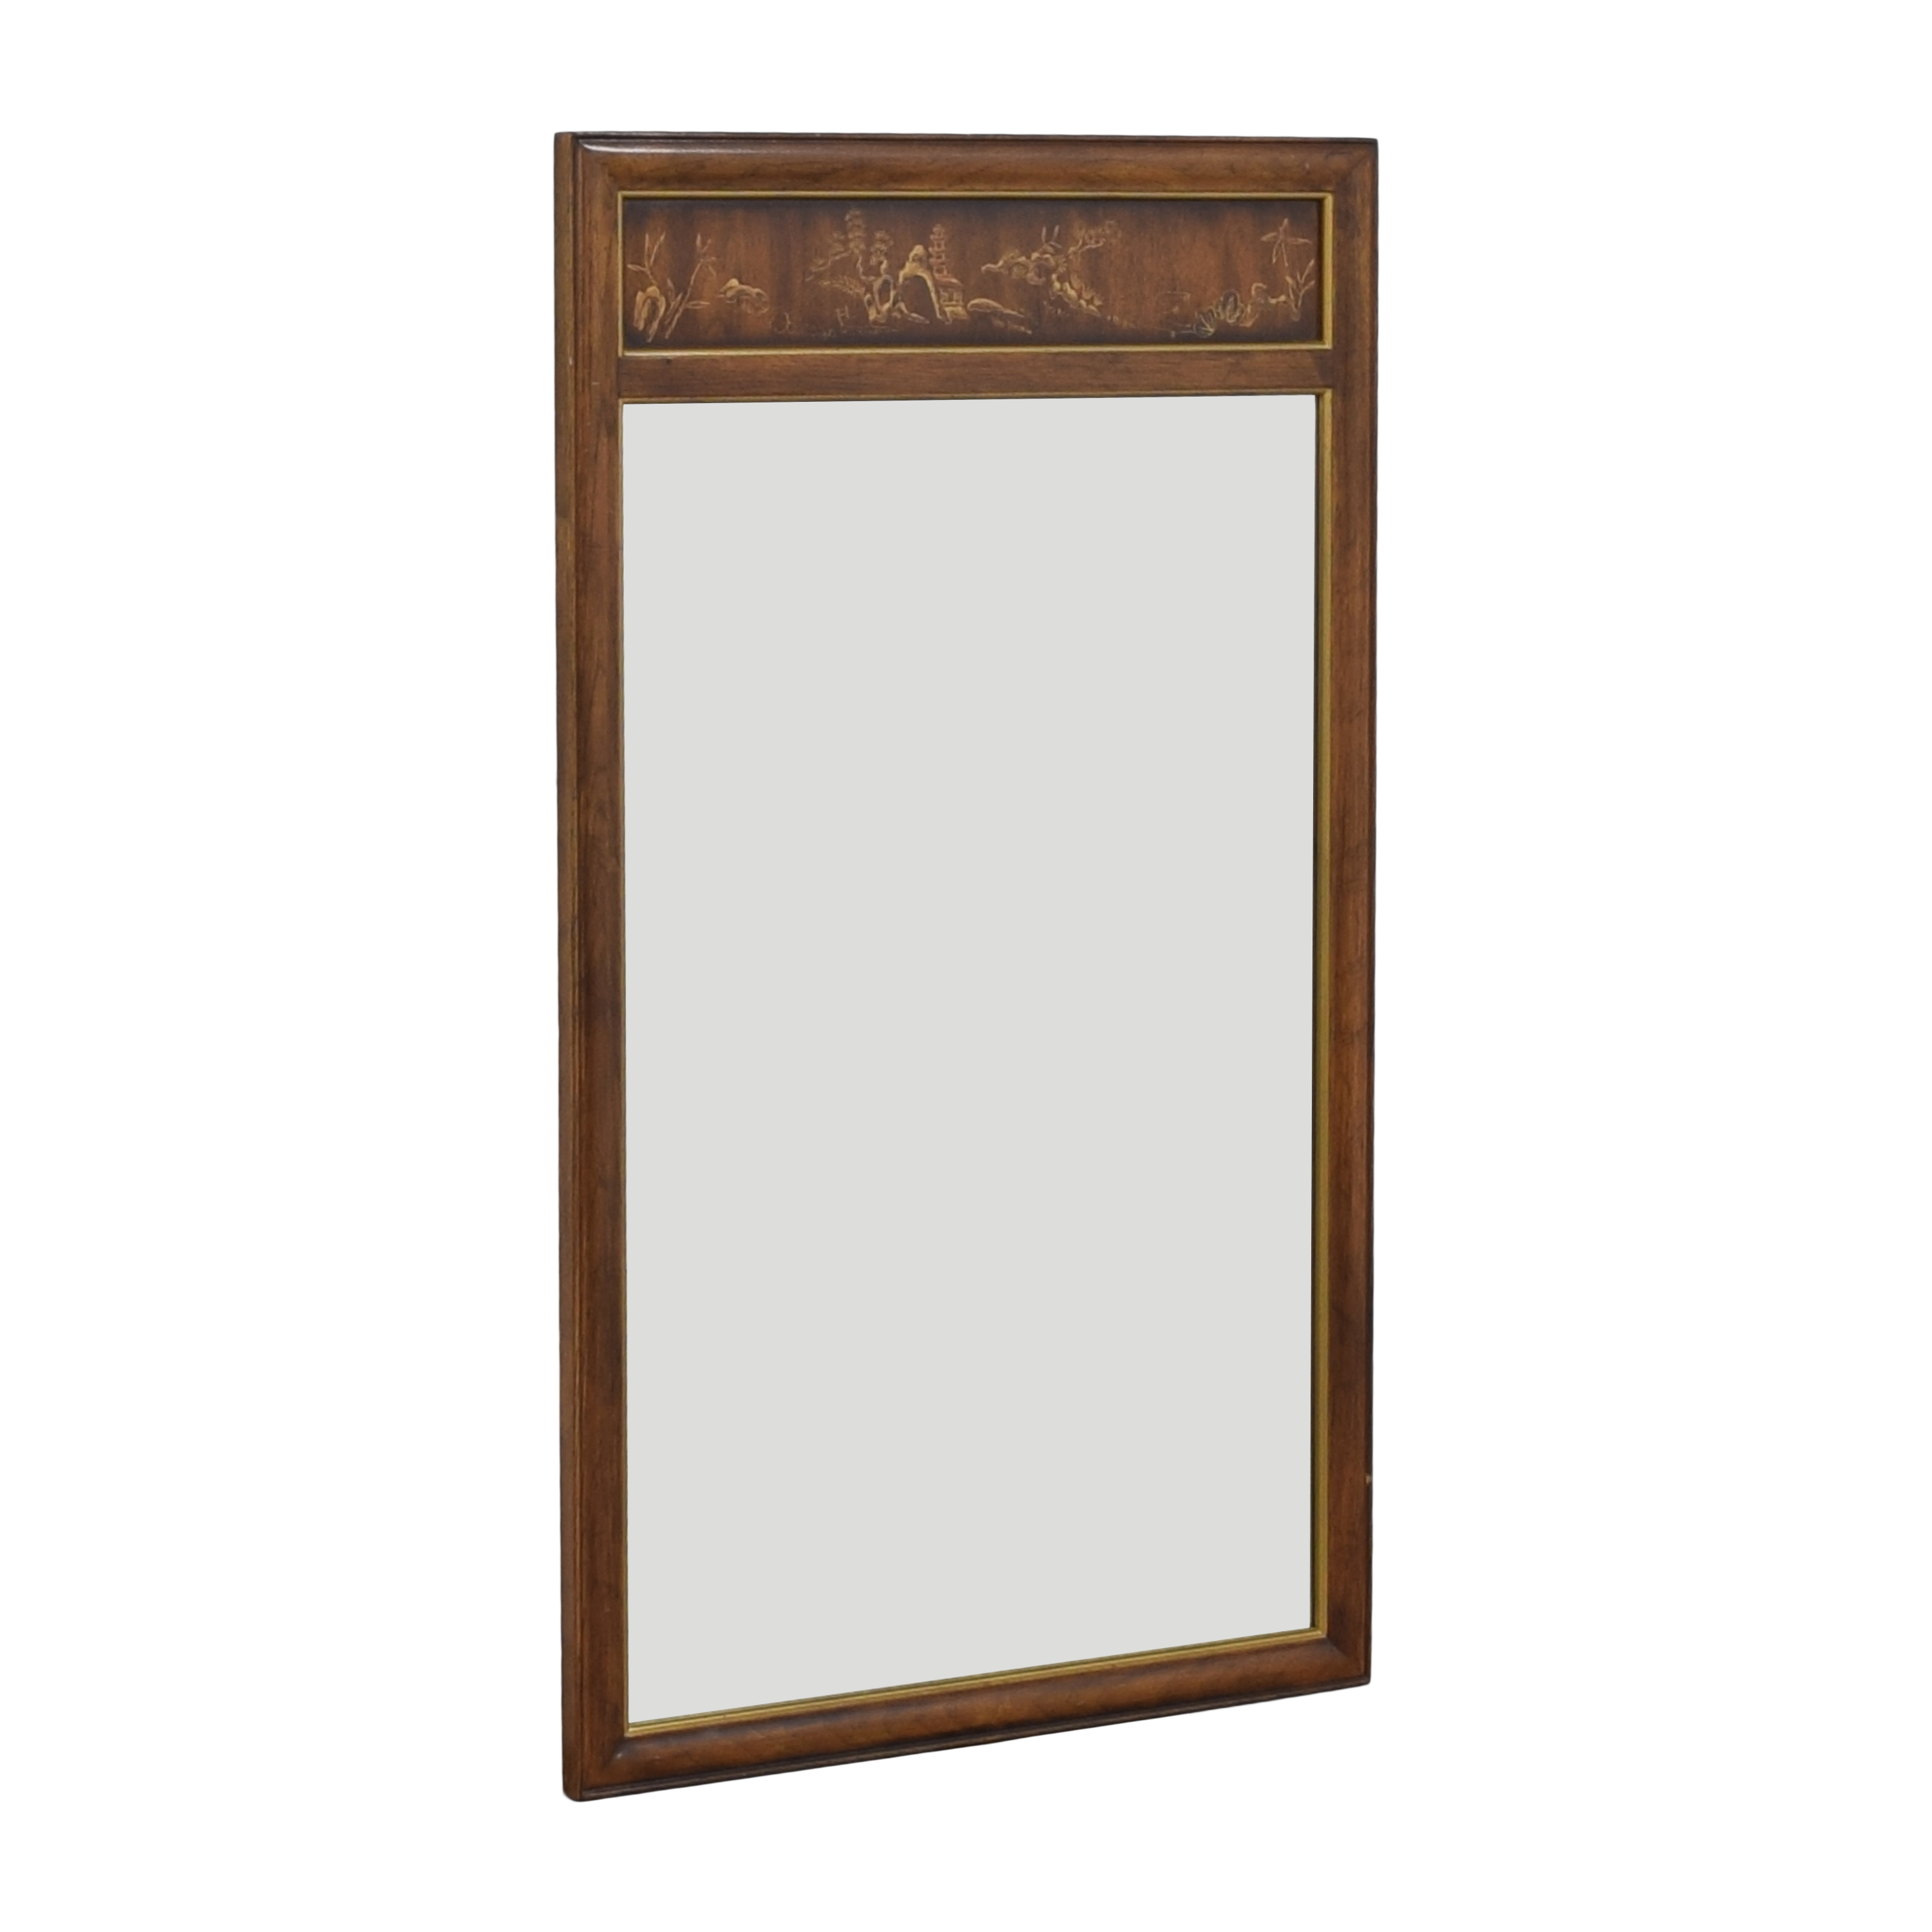 Drexel Heritage Dynasty Collection Mirror / Mirrors